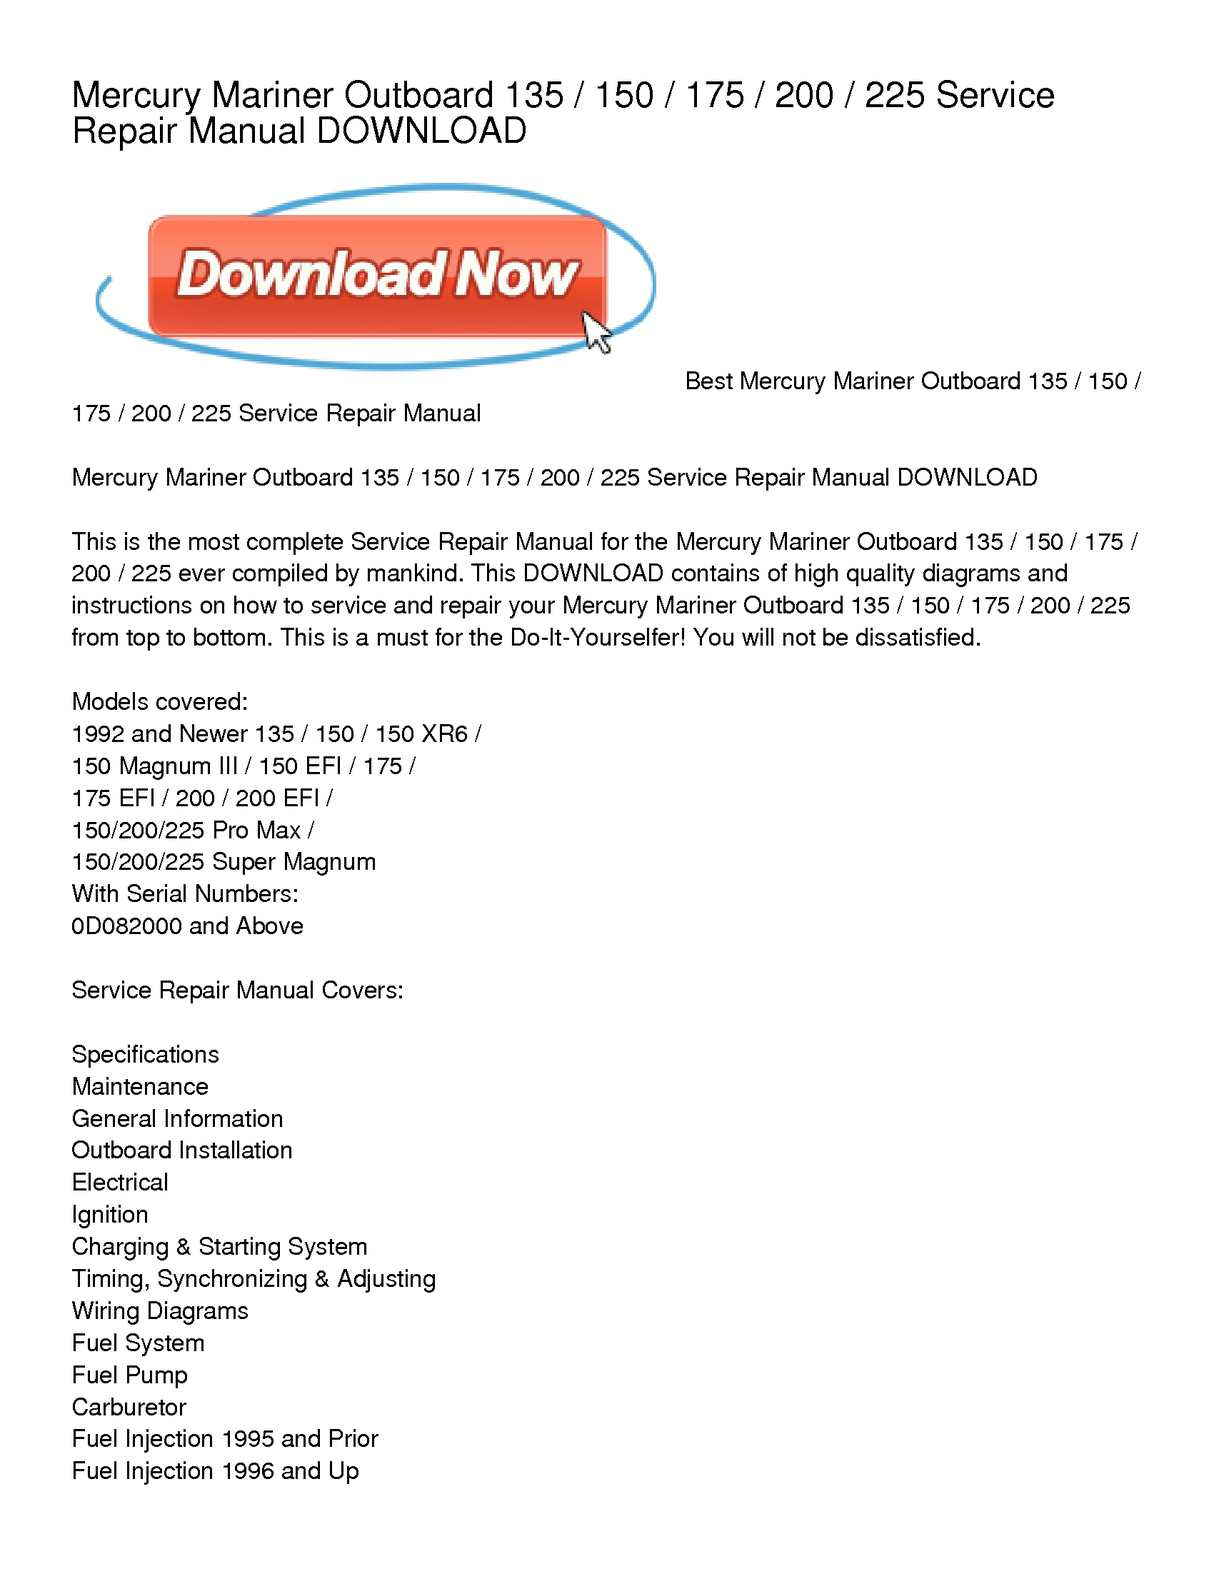 mercury xr6 outboard wiring diagram wiring library Mariner Motor Year Model calam o mercury mariner outboard 135 150 175 200 225 service repair